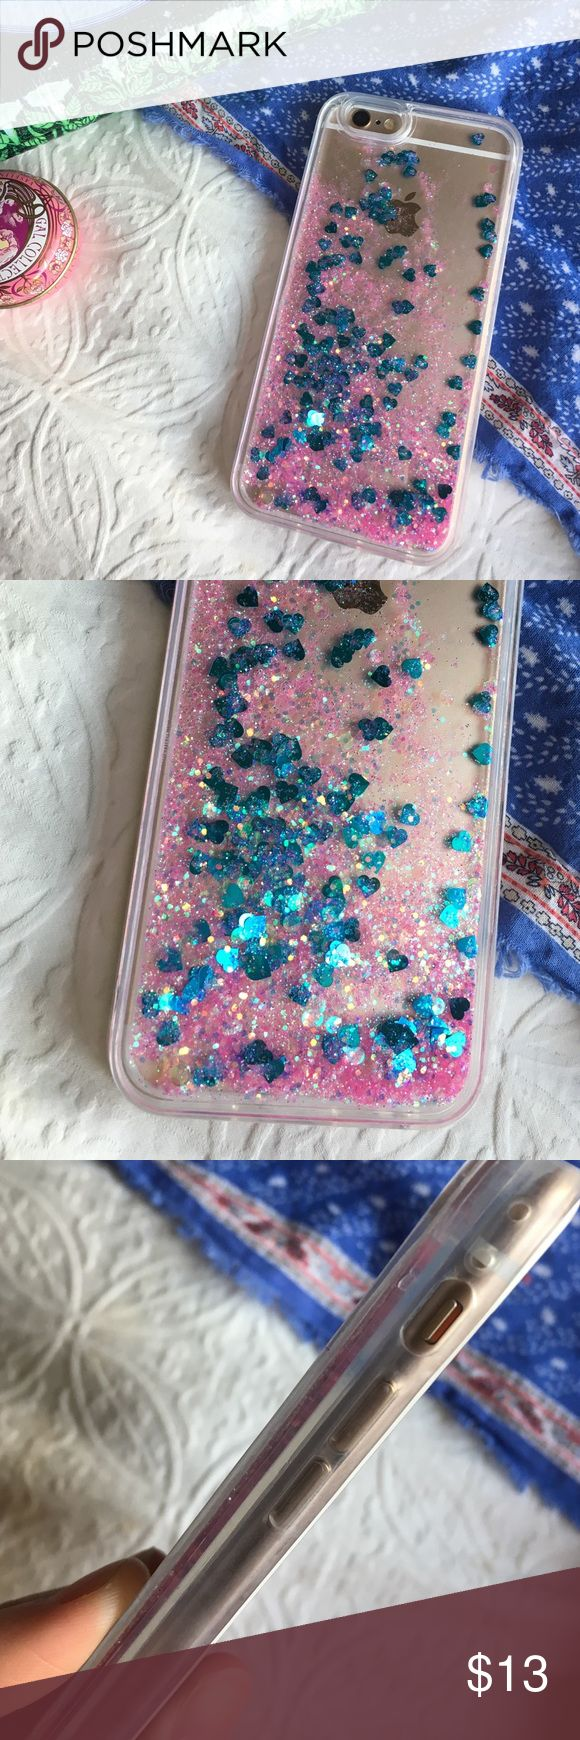 💘glitter phone case💘 ✨brand new ✨pink and blue sparkle water case ✨for iphone 6/6s ✨protects back of phone from scratches ✨not from listed brand-only for exposure ✨no lowballing please ✨ships next day excluding sundays 🍥Make an offer!🍥 tags: sparkles, cotton candy, turquoise, pretty, artsy, protective, otter box, speck, hearts, heart, brandy melville, urban outfitters, violet, tumblr, cool, apple, gift, pearlescent, holographic, translucent, transparent, clear, Brandy Melville…